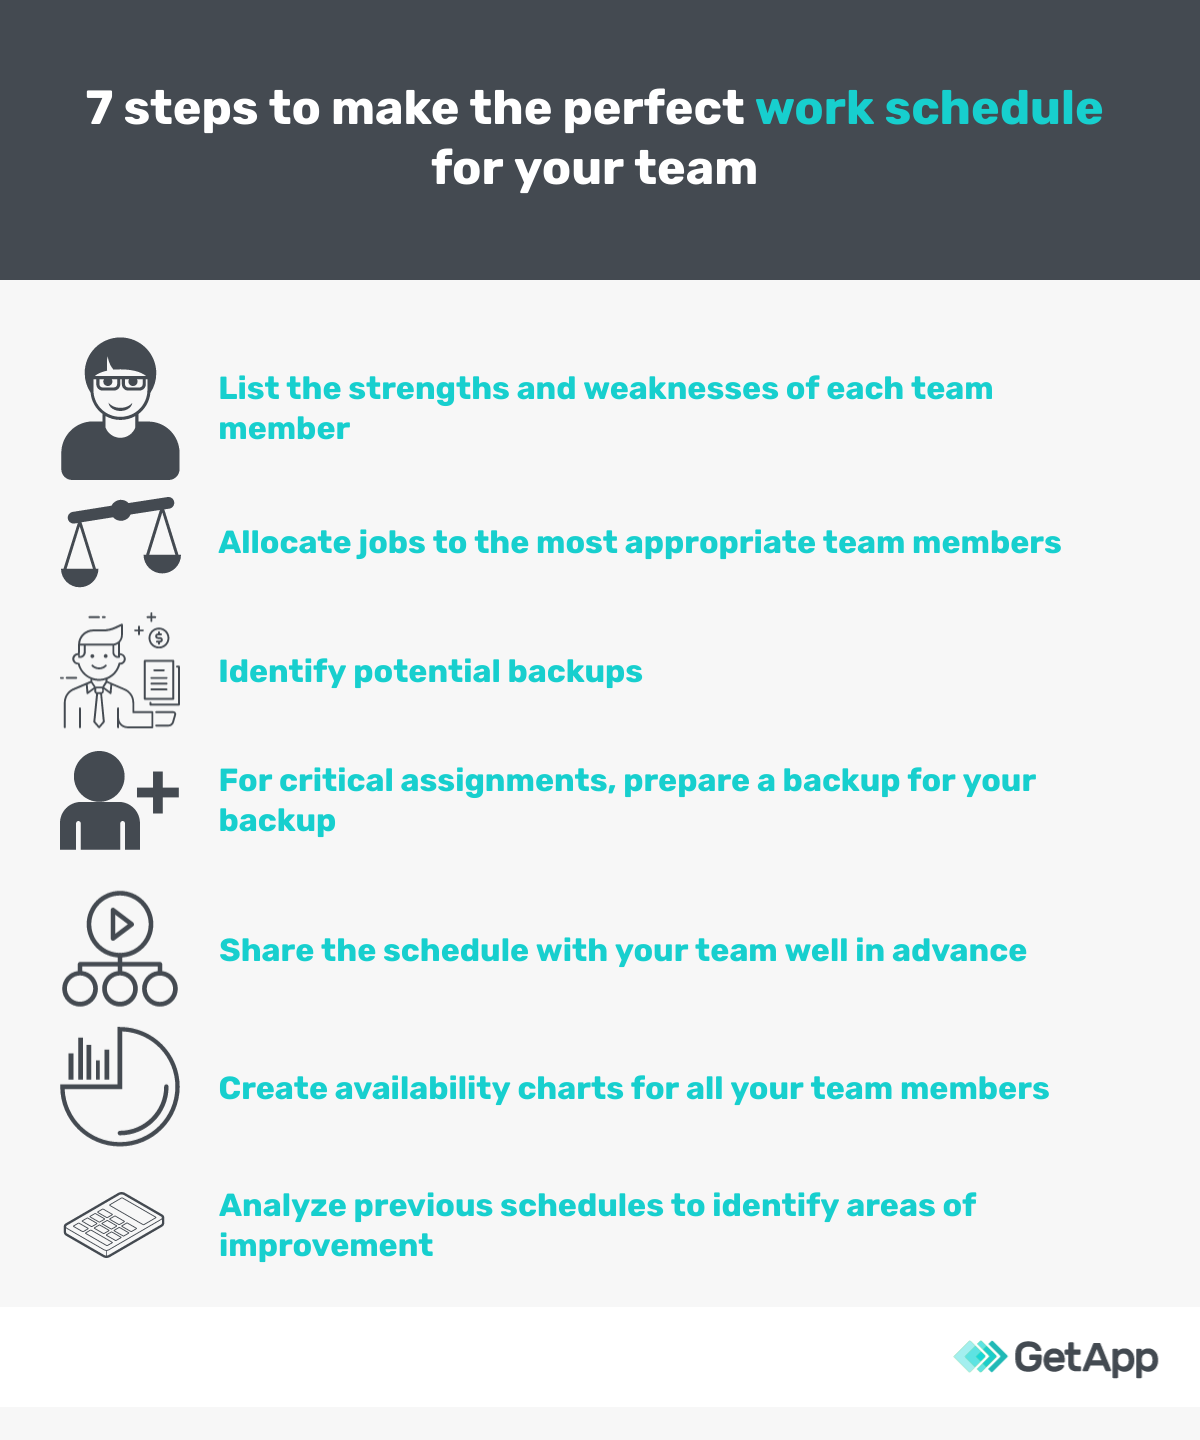 7 Steps to Create the Perfect Work Schedule for Your Team